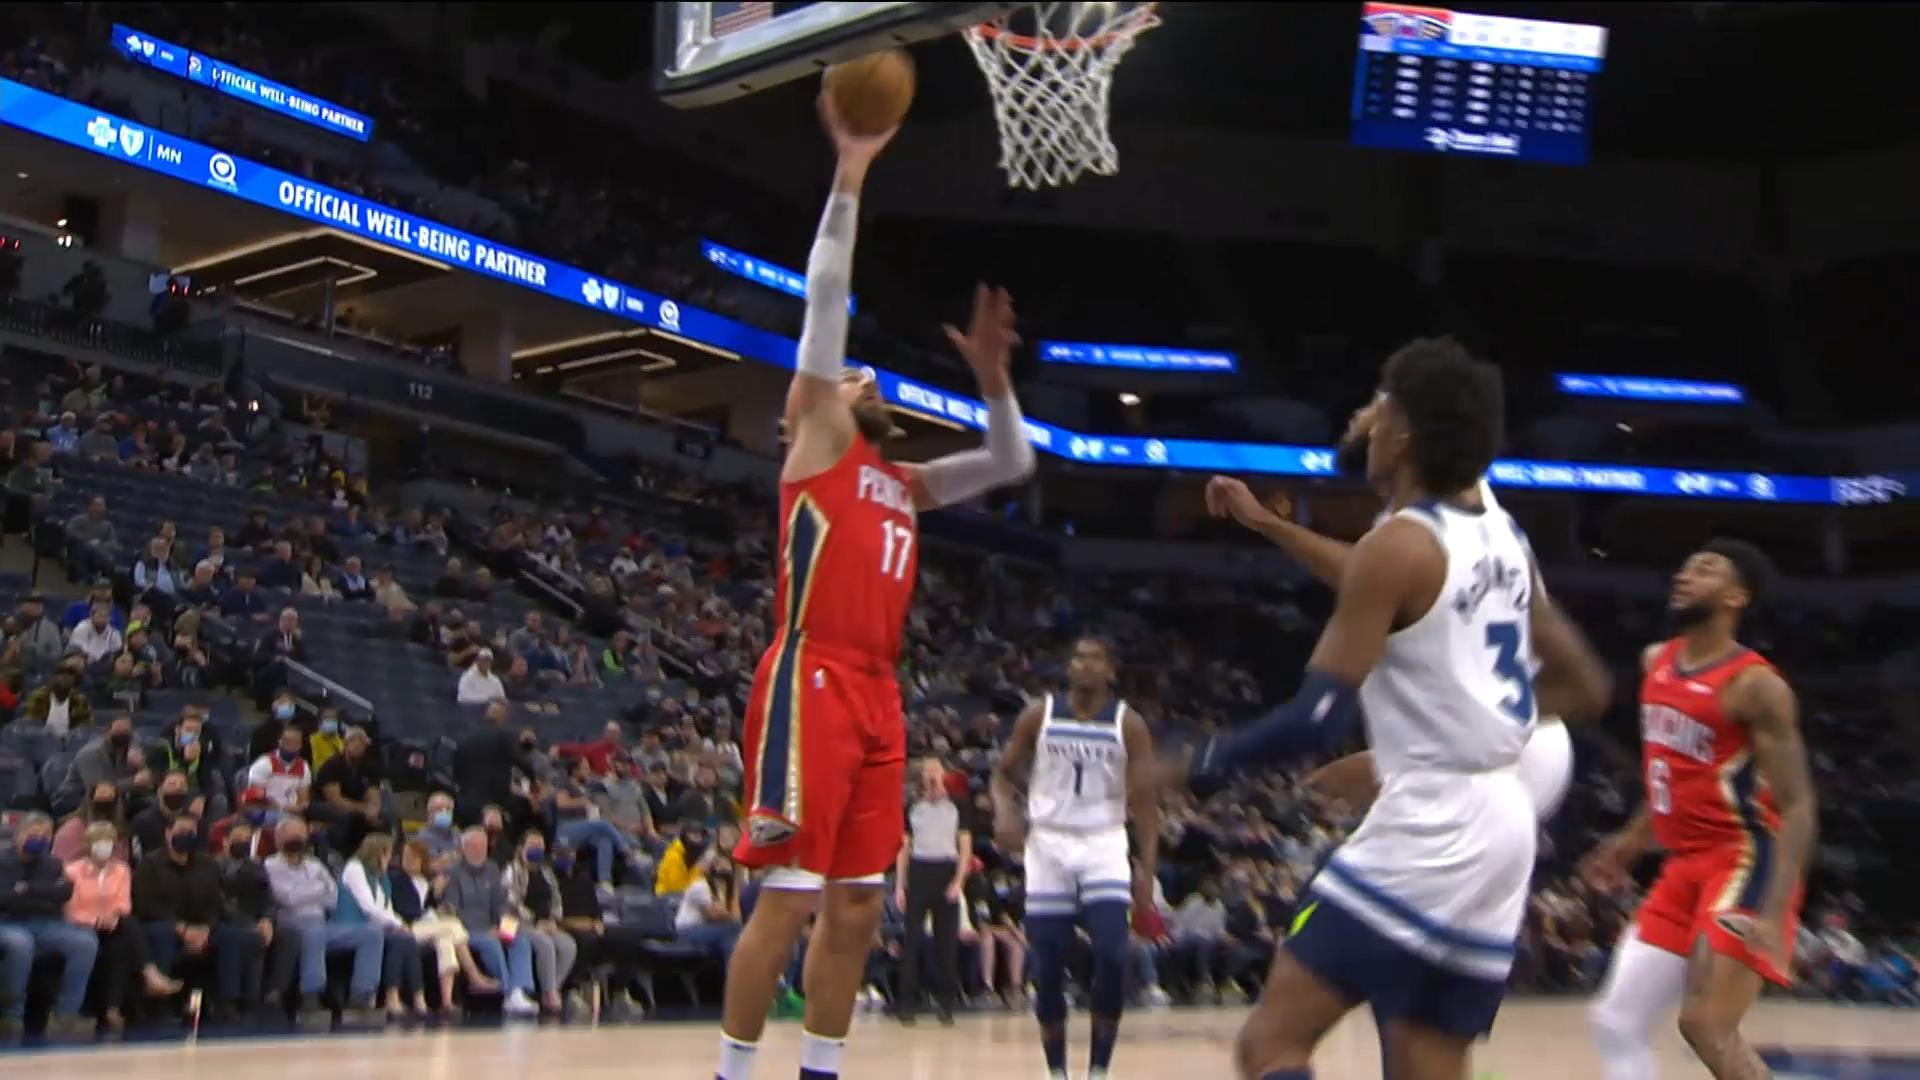 Jonas Valanciunas lays it in off the feed from Nickeil Alexander-Walker | Pelicans at Timberwolves 10-25-21